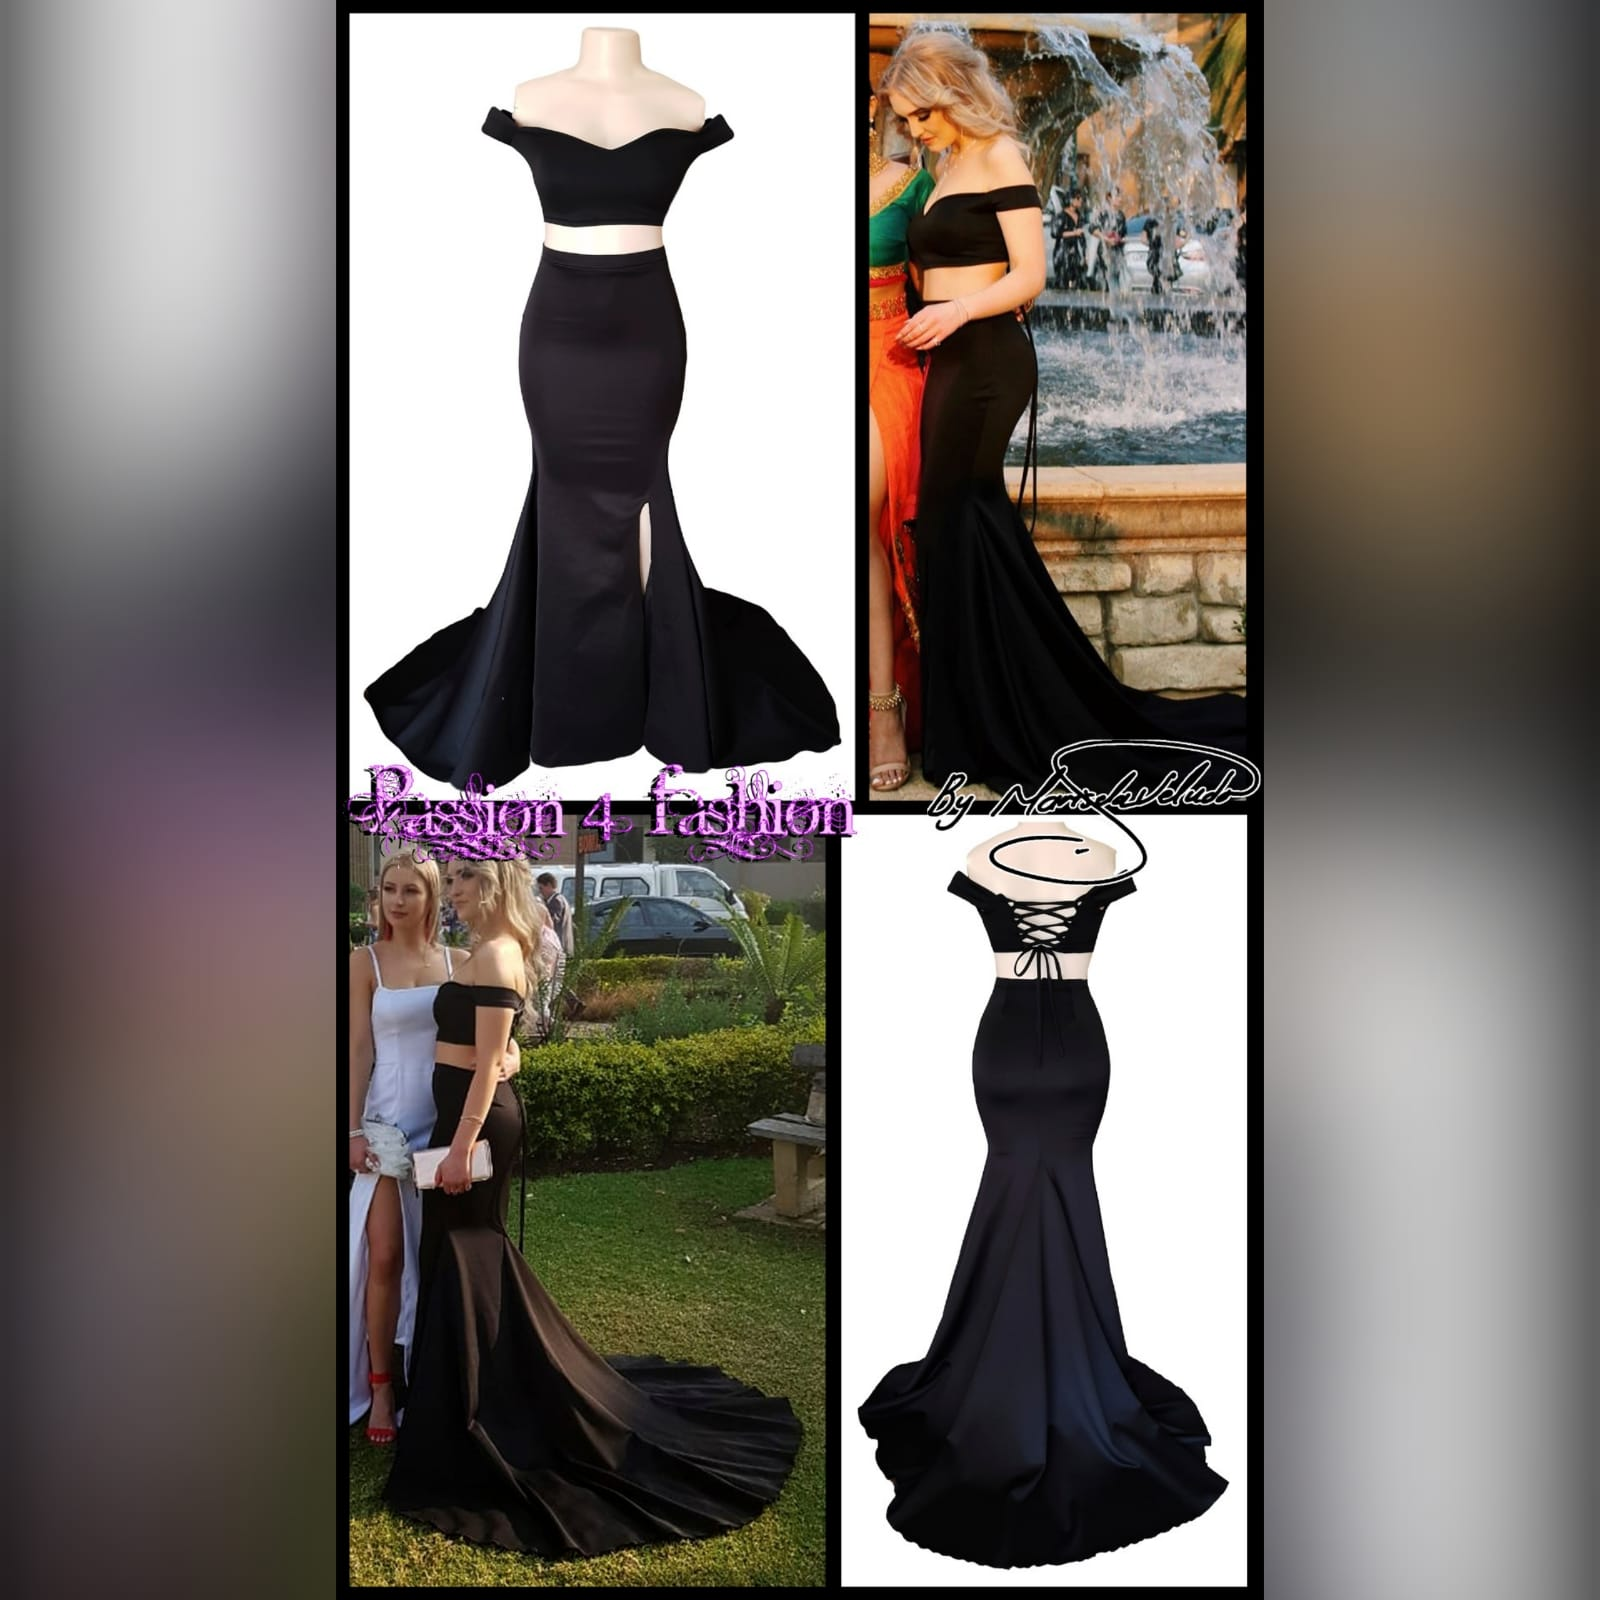 2 piece black off shoulder matric dance dress with a crop top 5 2 piece black off shoulder matric dance dress with a crop top. Lace-up back. Long skirt with knee length slit and a train.